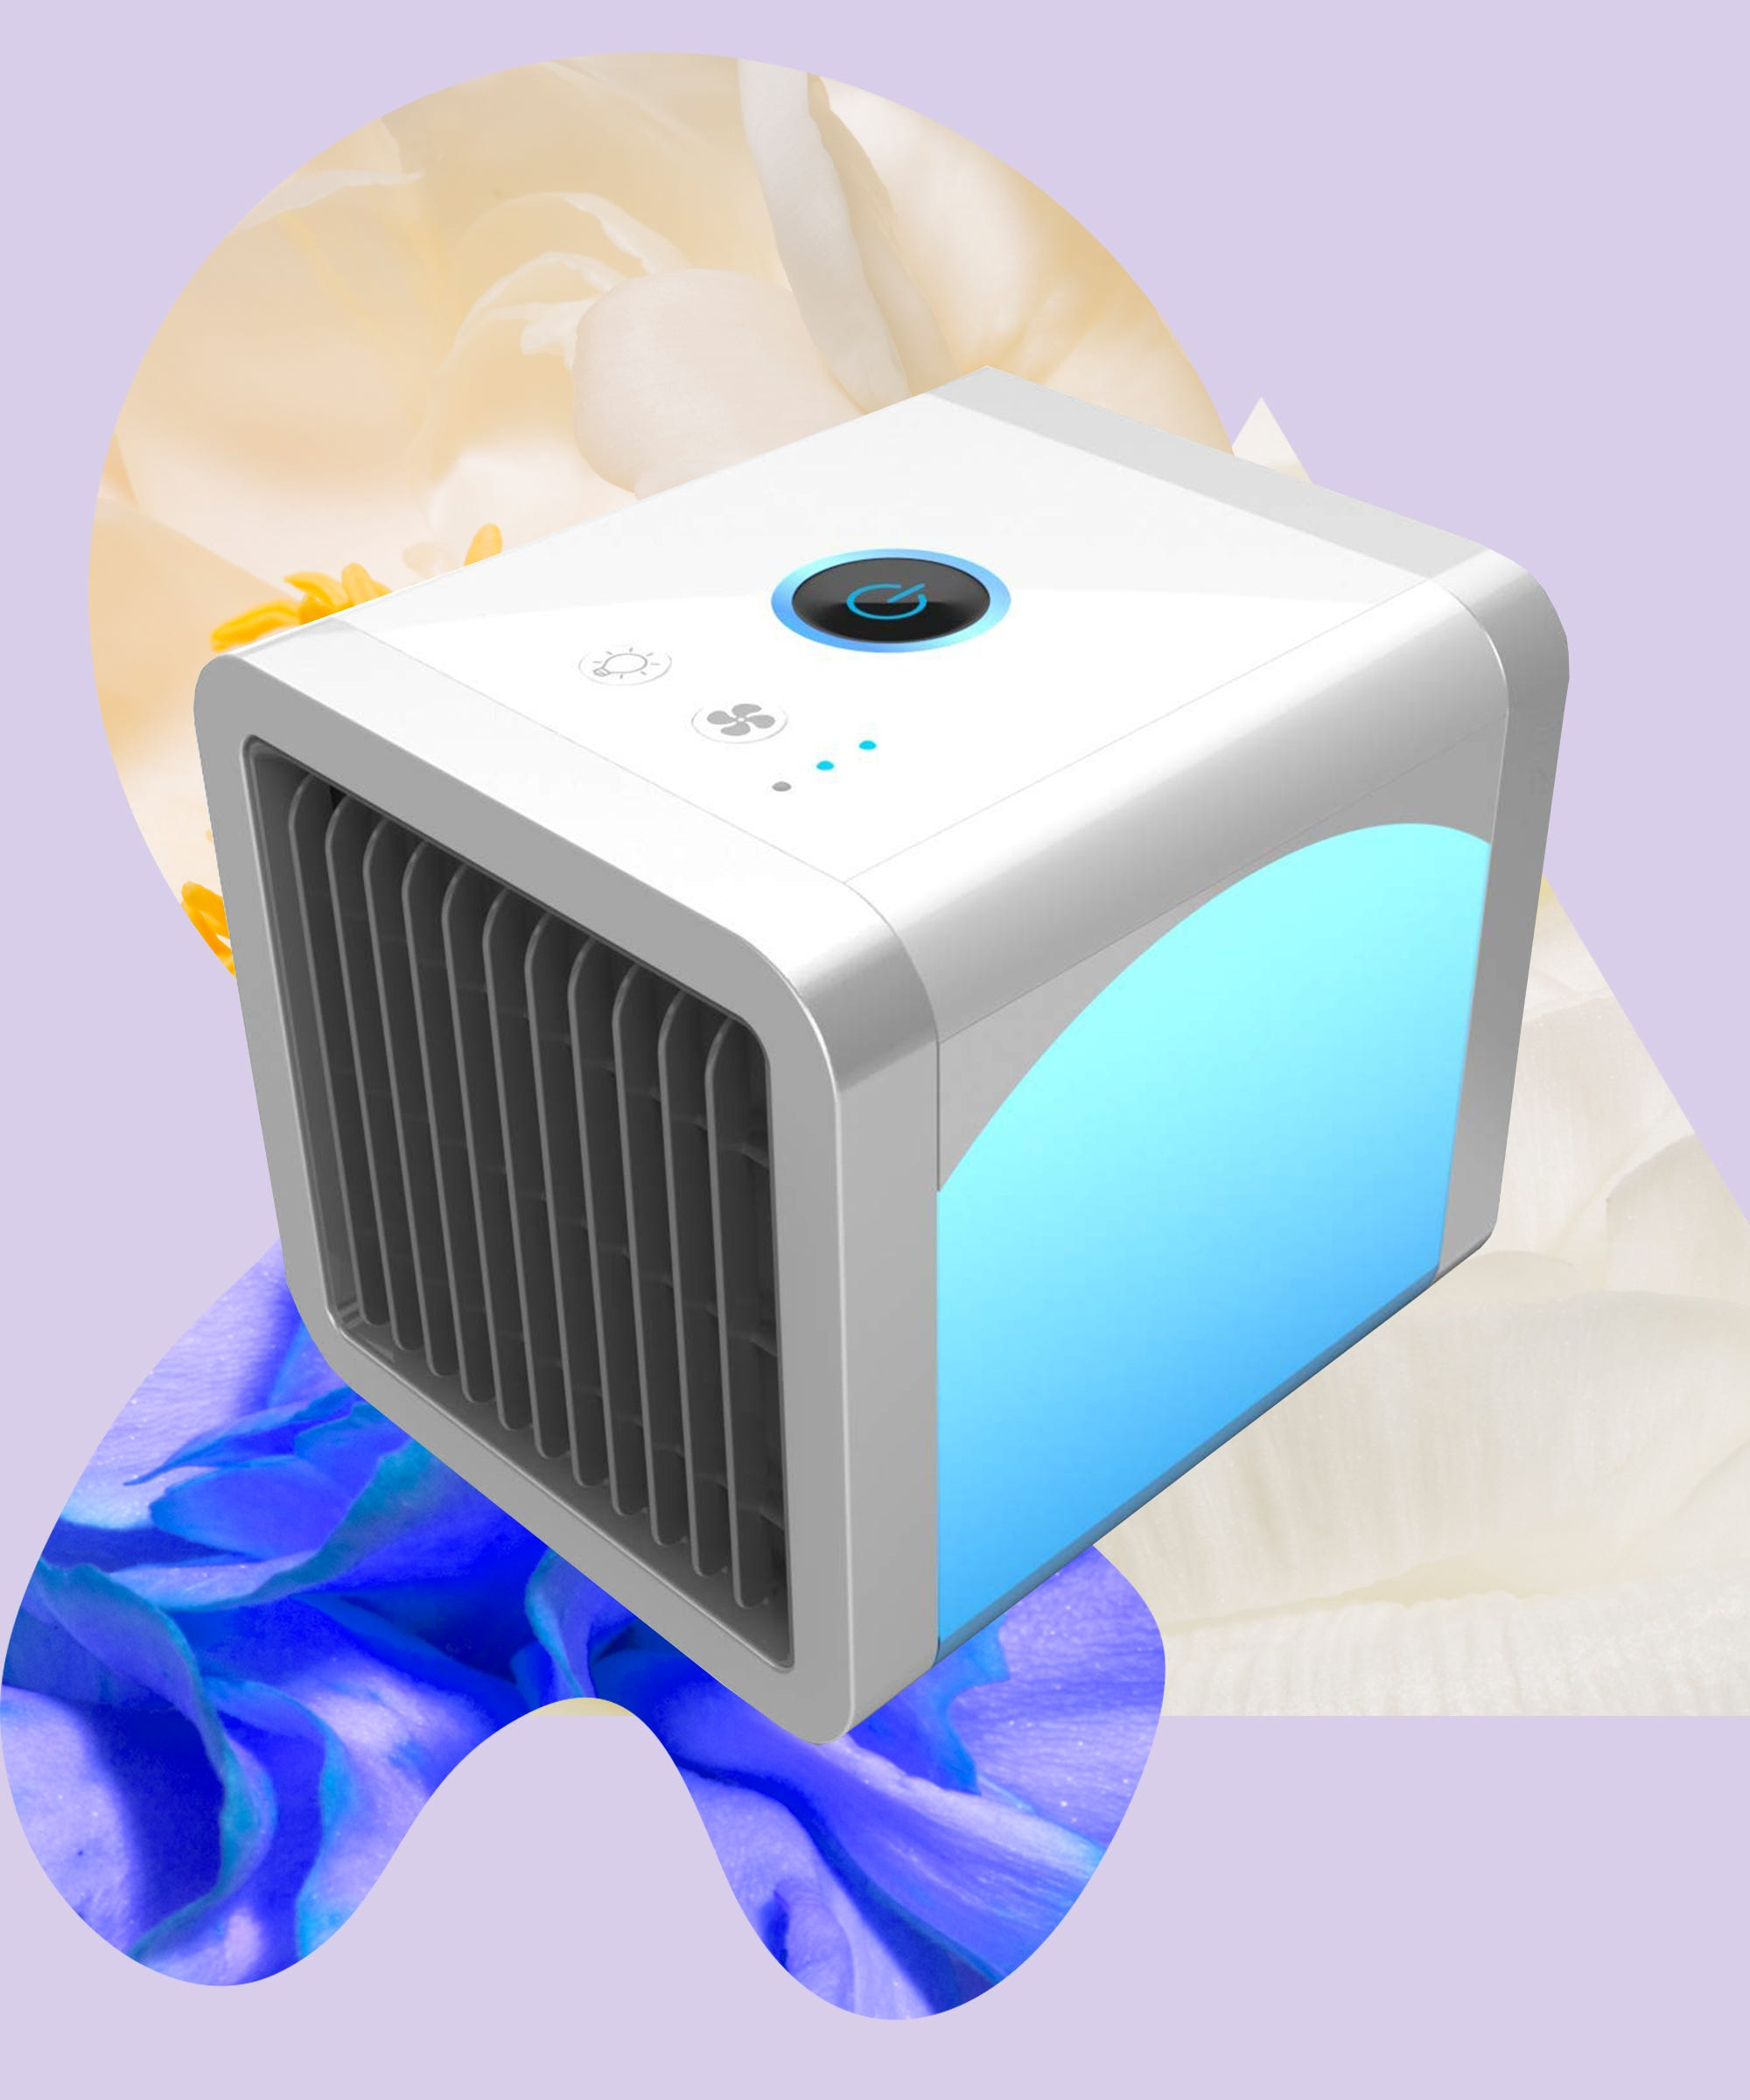 Best Ac Units 2021 Best Portable Air Conditioners For Small Space AC Units